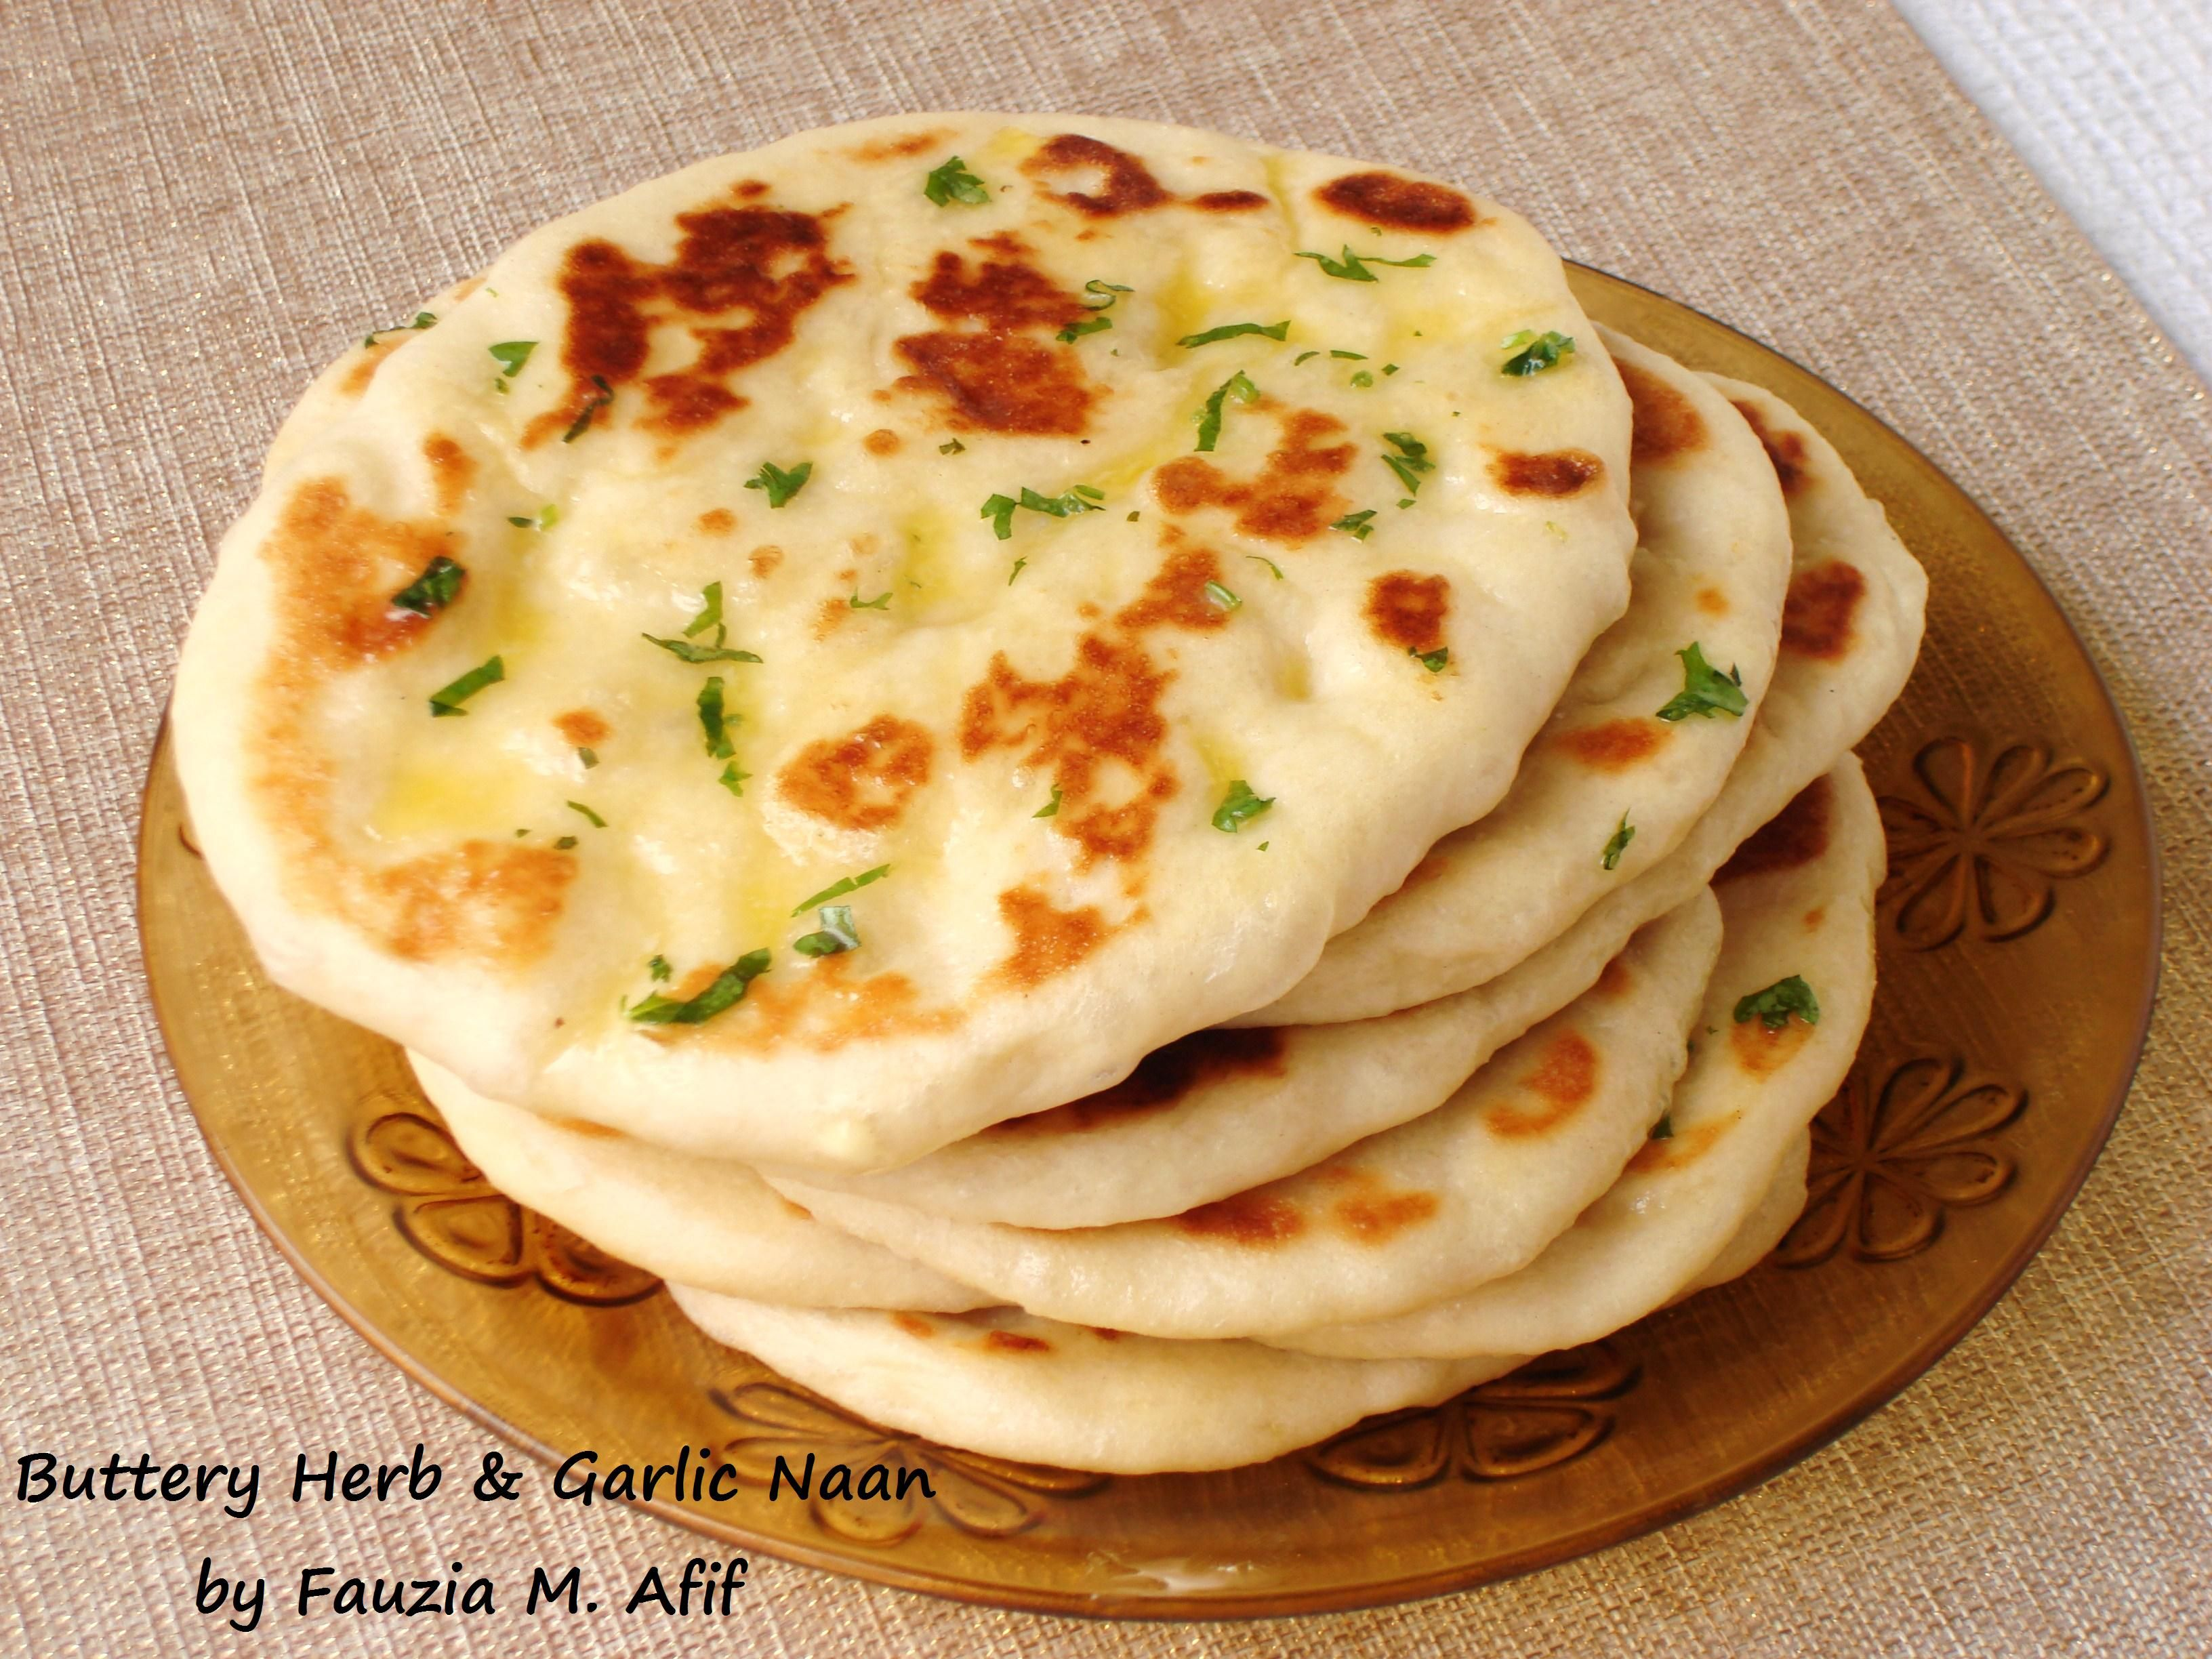 Many of us love a good soft naan to lap up an Indian curry. But when you have a fluffy soft naan that is warm, buttery and with an amazing herb & garlic aroma, you may just forget all about the curry! This naan is a STAR in its own right.